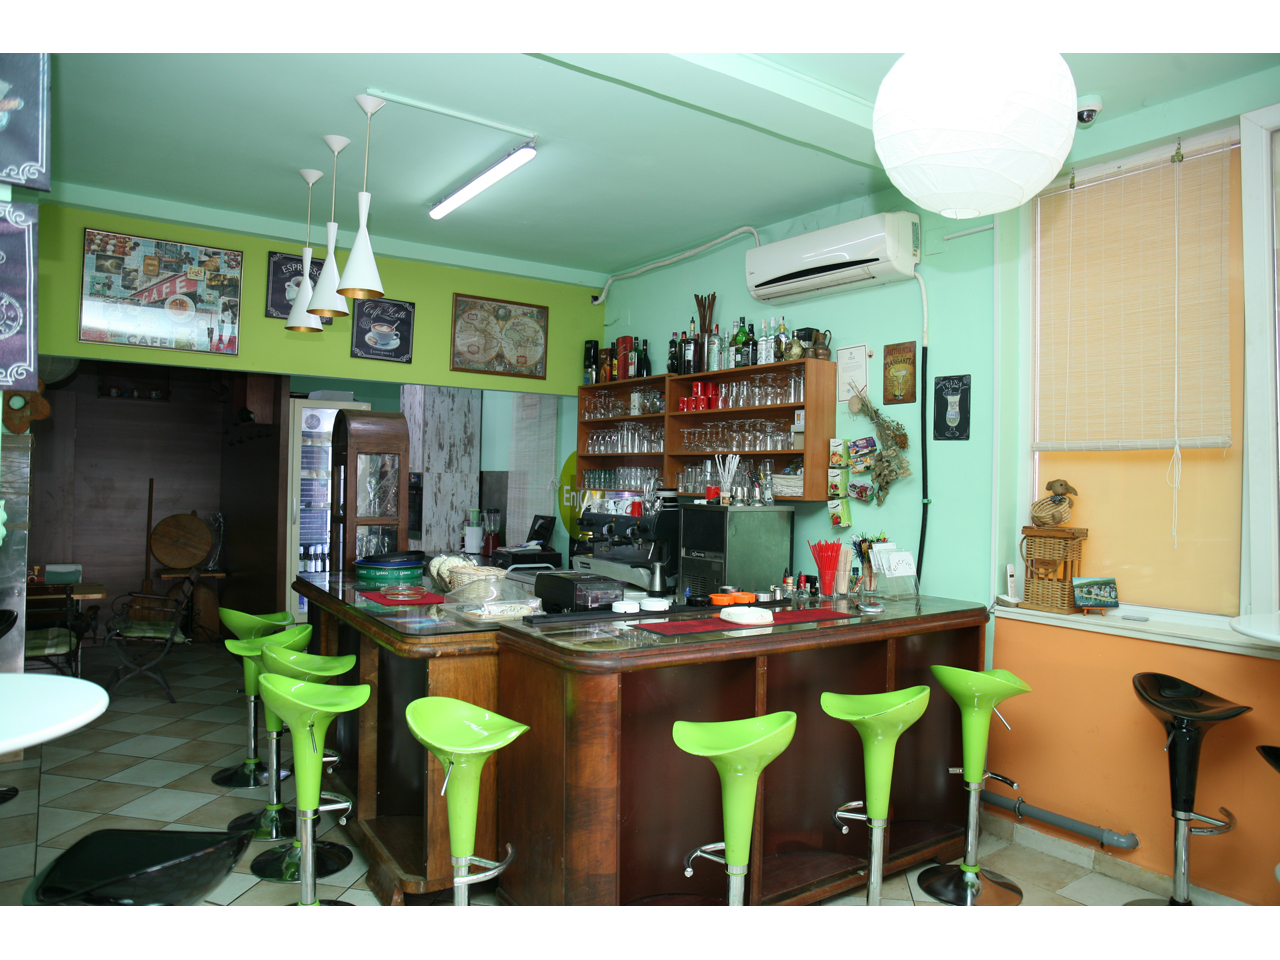 CAFFE PEKARA PAUSA Bakeries, bakery equipment Beograd